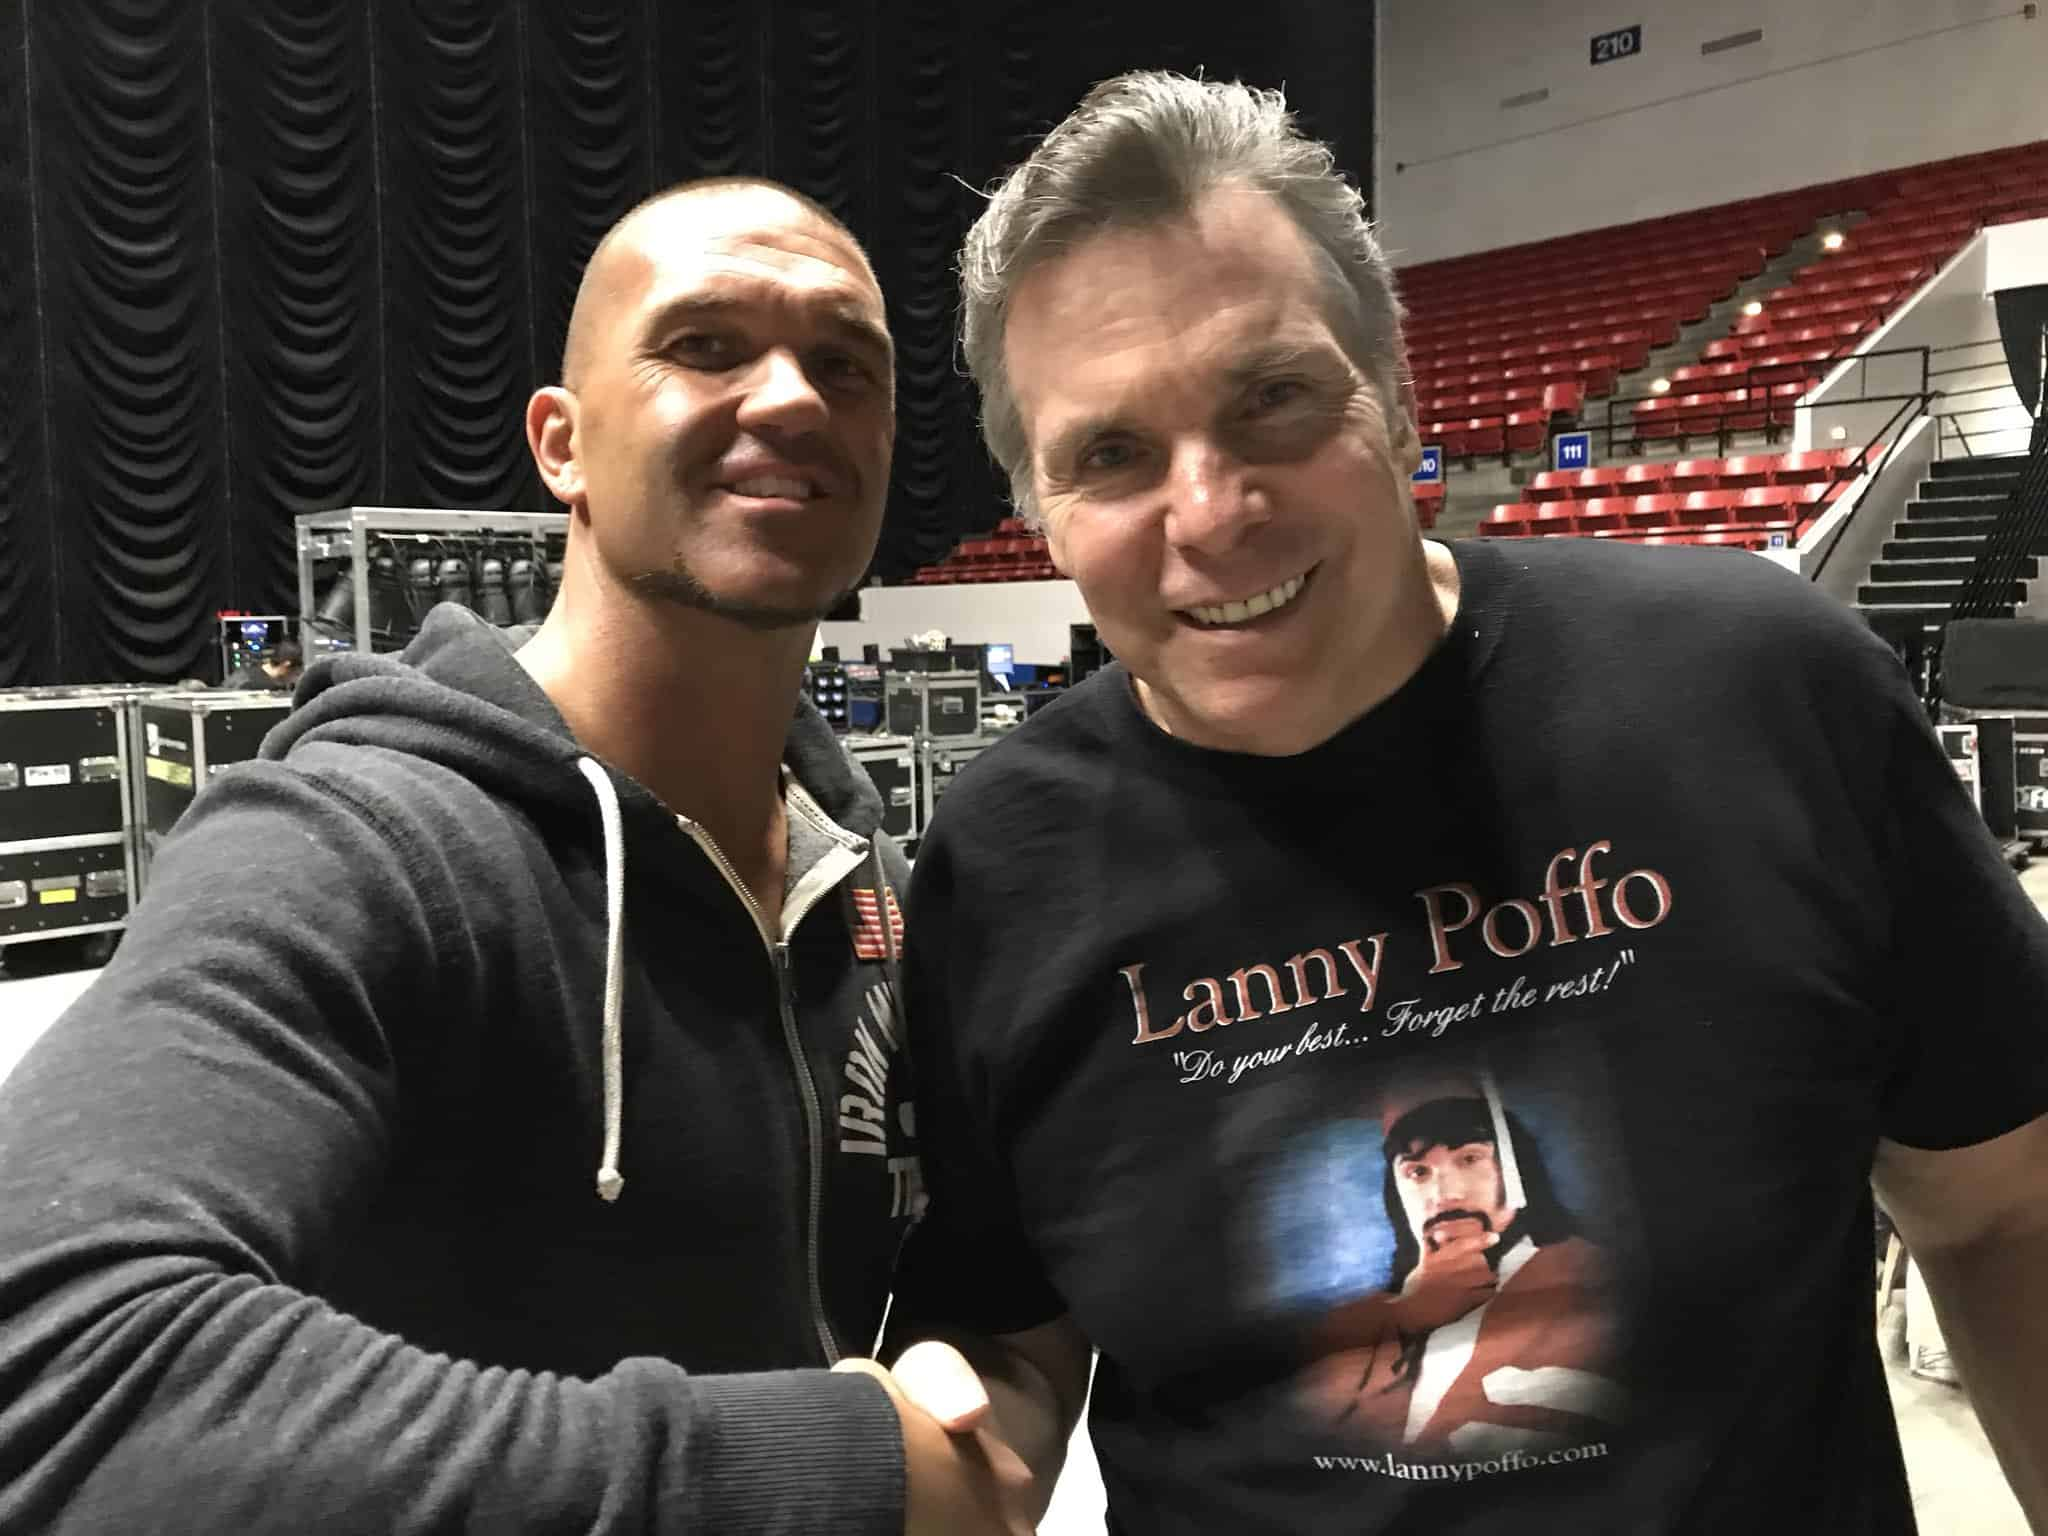 Frankie Kazarian and Lanny Poffo shake hands when meeting for the first time back in April, 2018